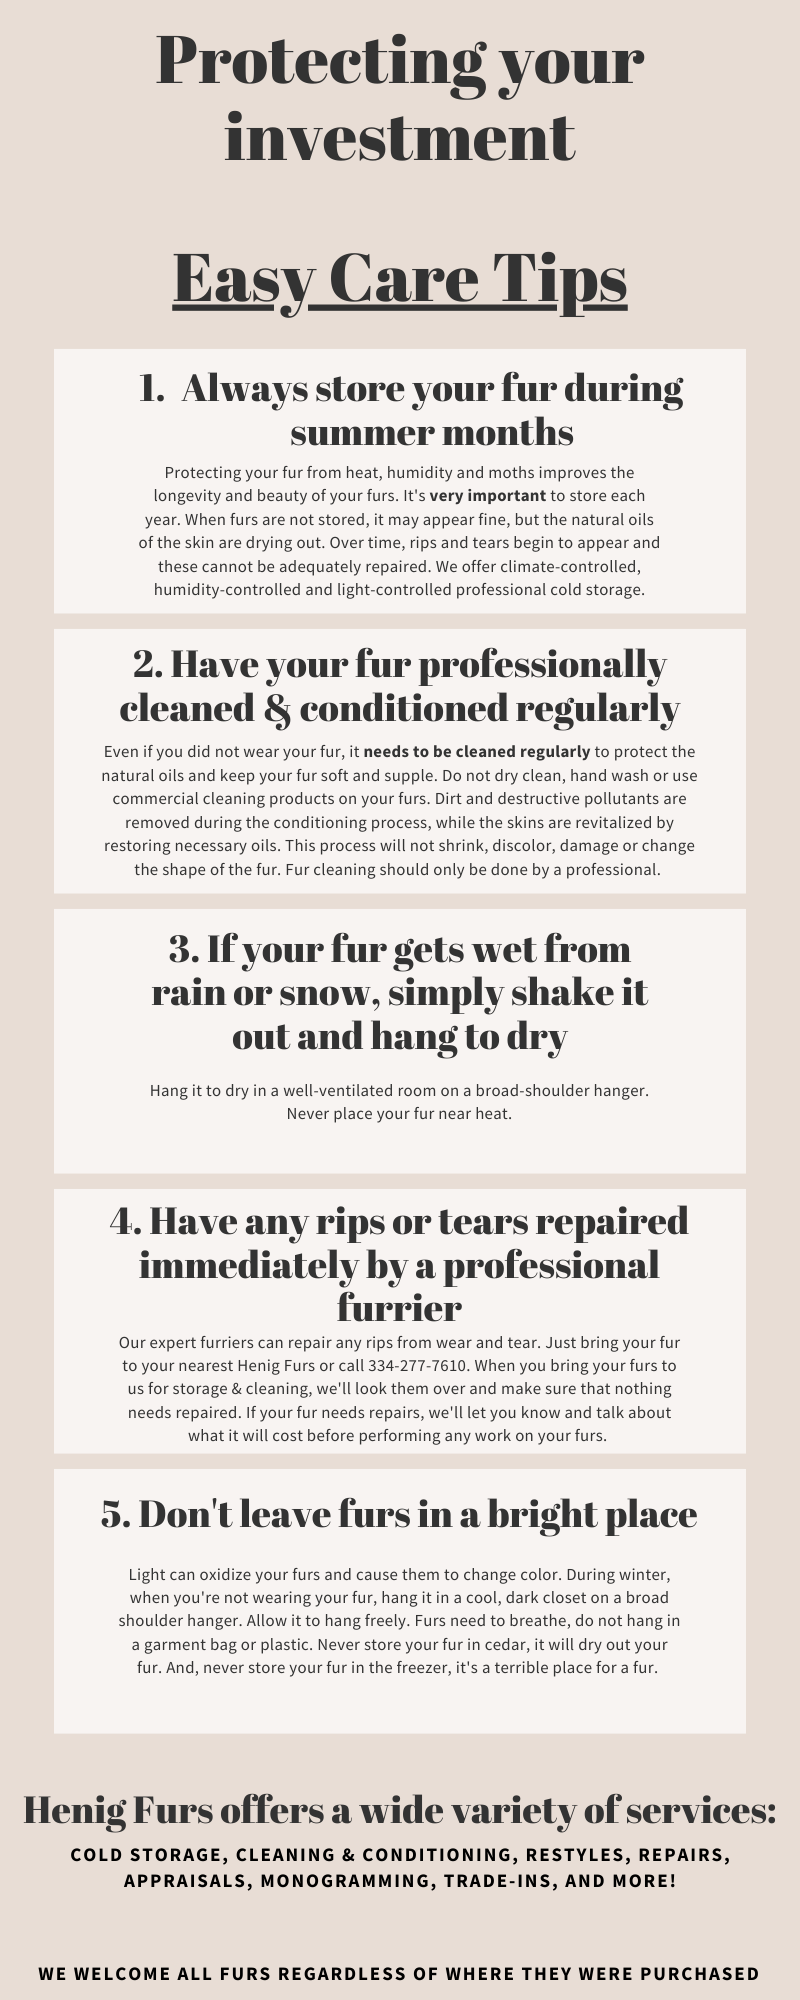 Caring for your fur - Protect your investment - Easy Care Tips